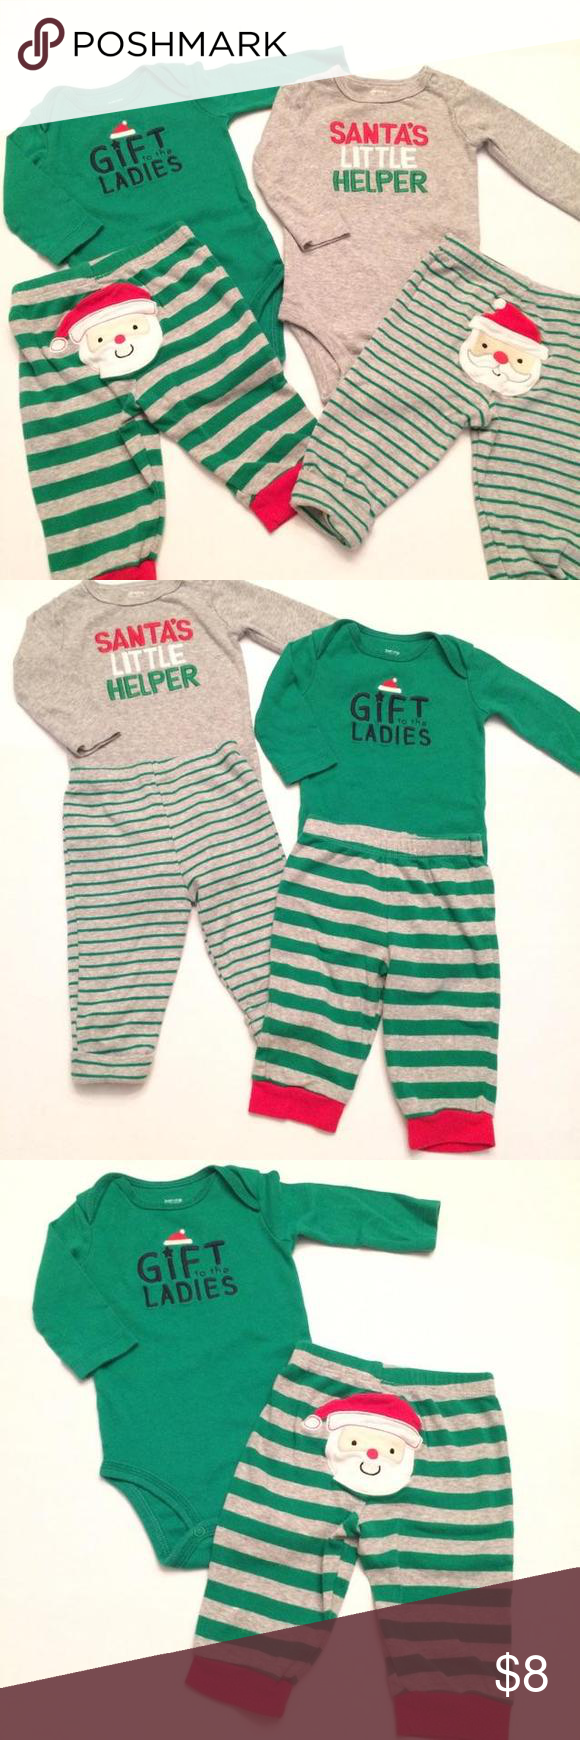 4 Piece Outfit Christmas Mix & Match Set Cute 2 outfit mix and match set. One out from Carters the other Just One You by Carters. Cute for Christmas 🎄 Carters Shirts & Tops